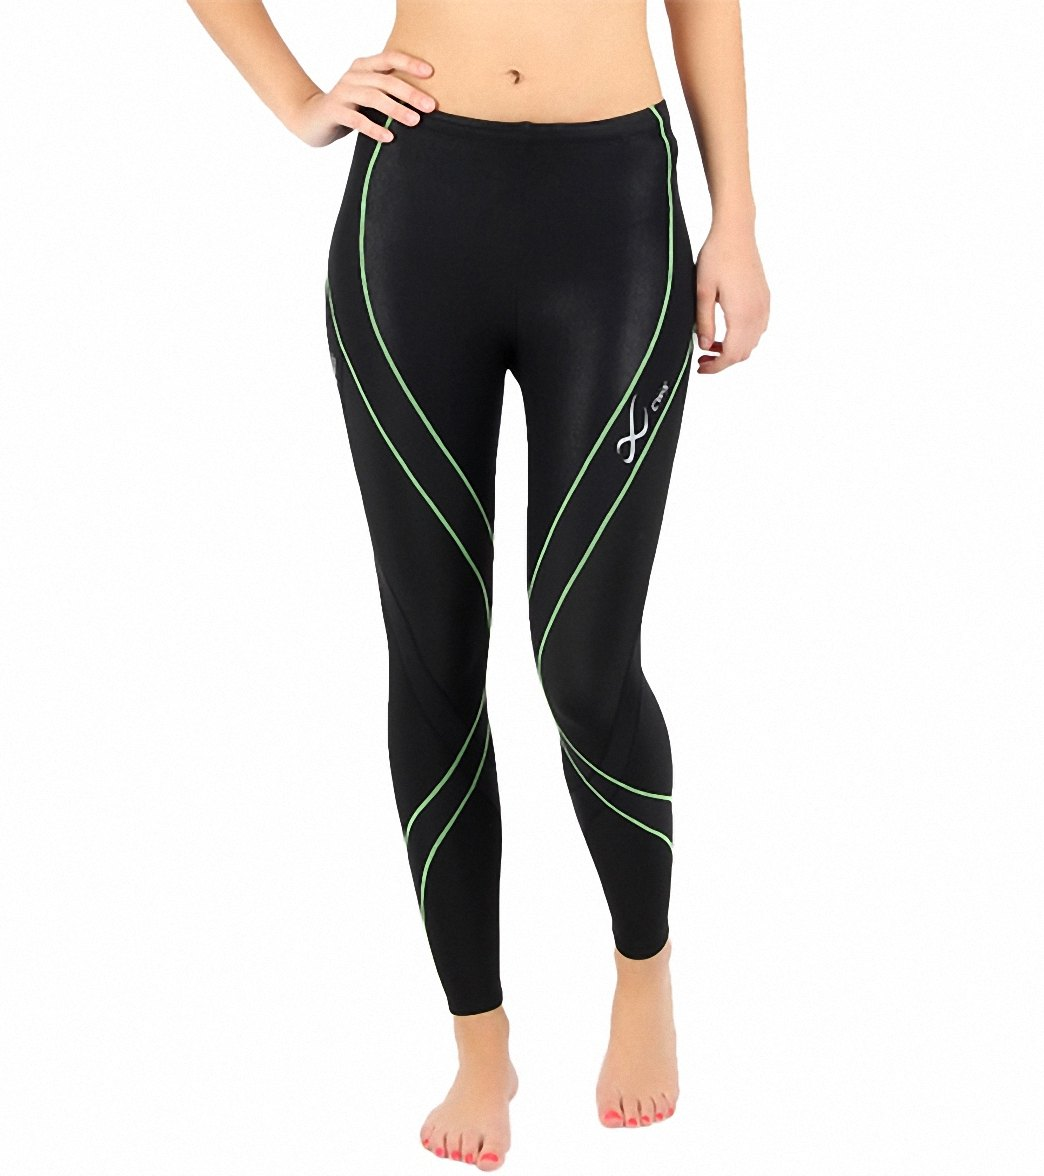 611fbc6d7a CW-X Women's Insulator Endurance Pro Running Tights at SwimOutlet.com -  Free Shipping